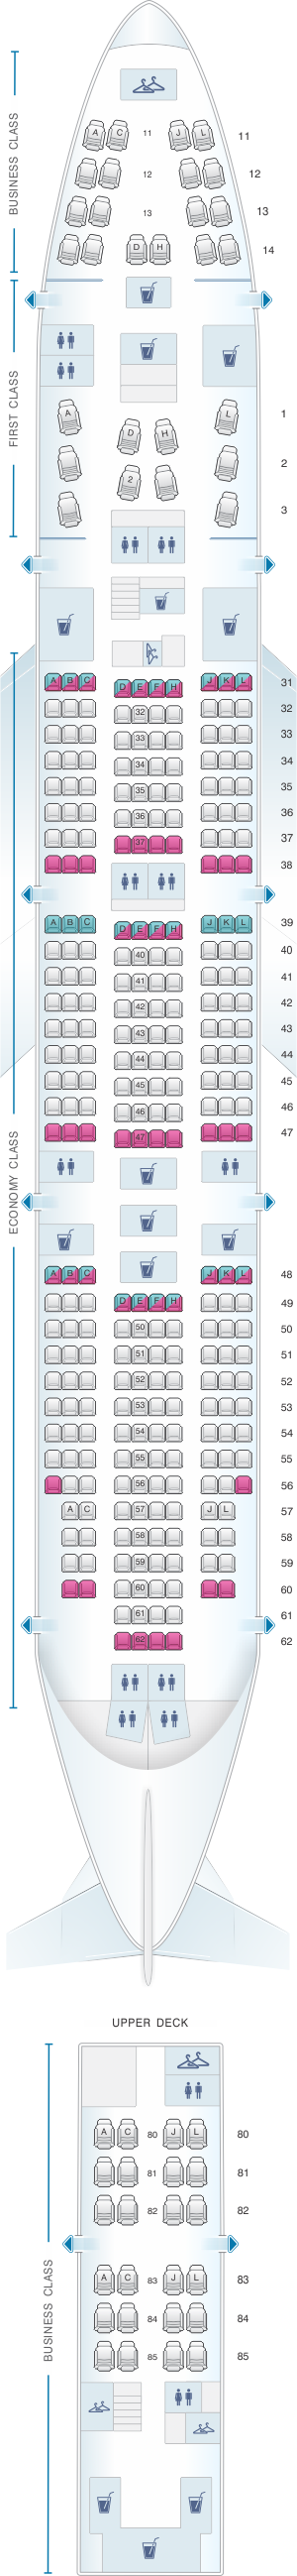 Seat map for Air China Boeing B747 400 (344PAX)